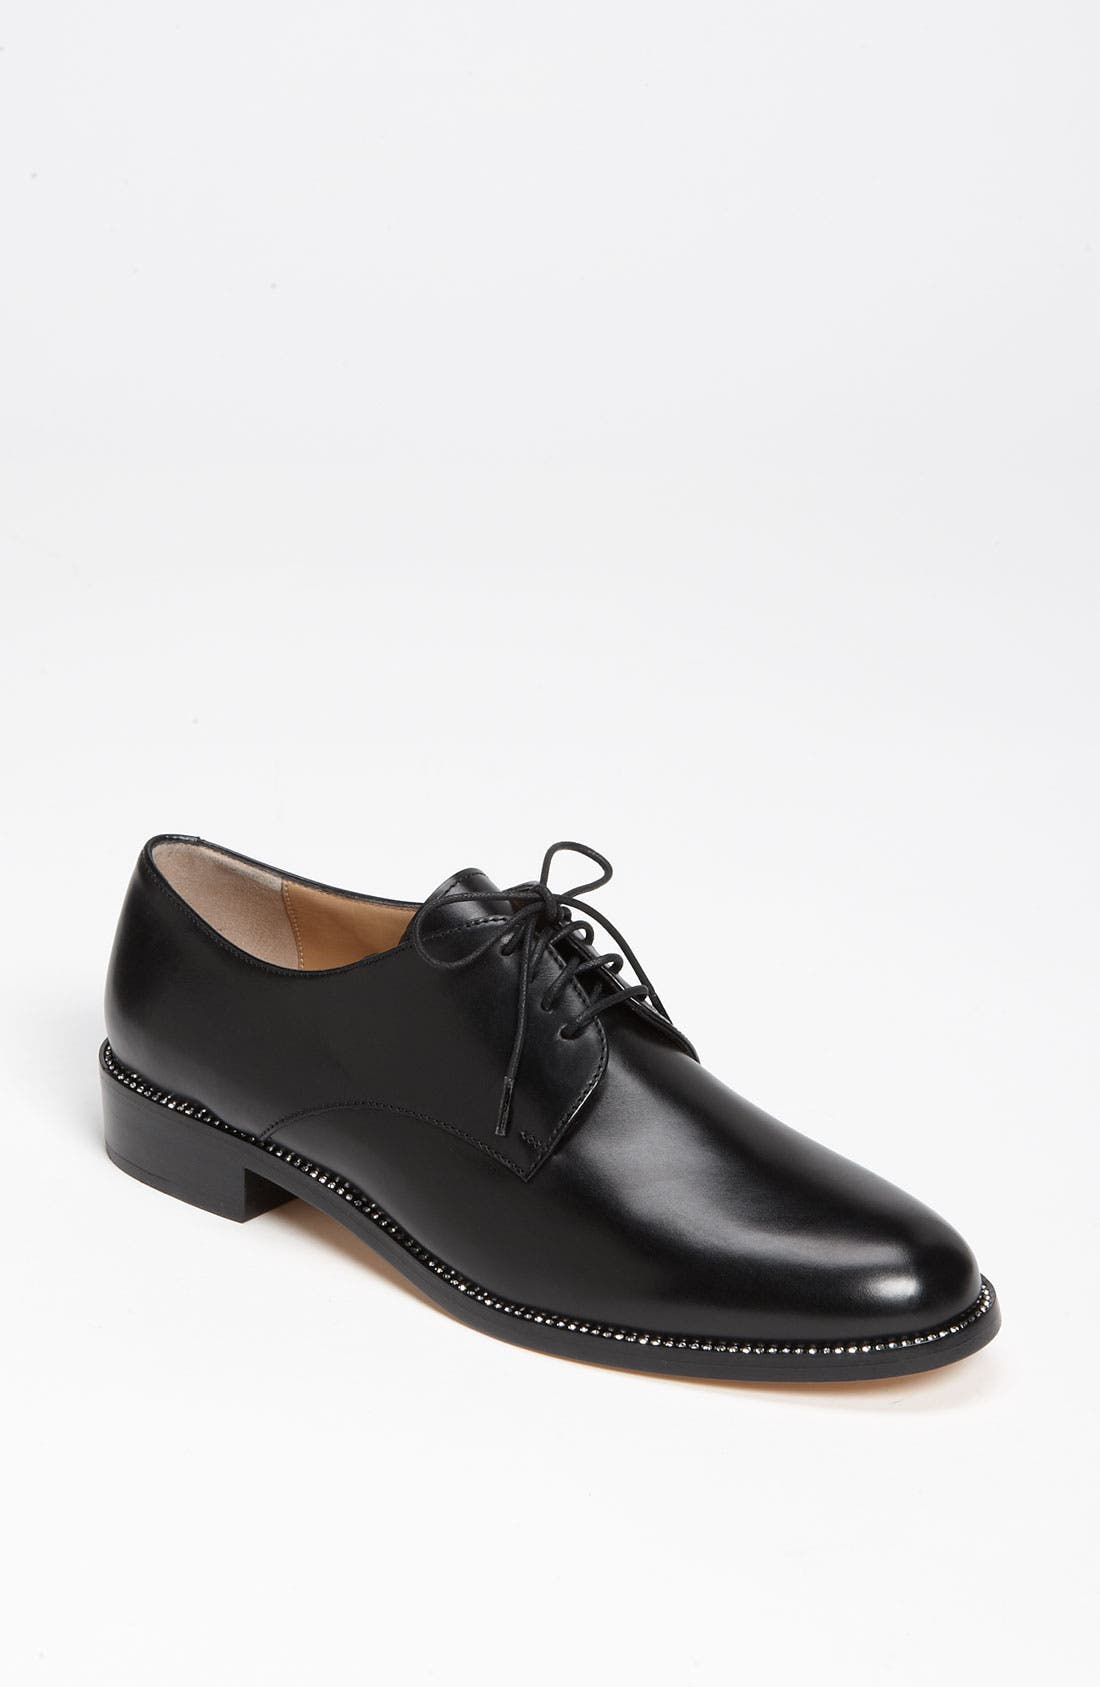 Alternate Image 1 Selected - Salvatore Ferragamo 'Tandy' Oxford